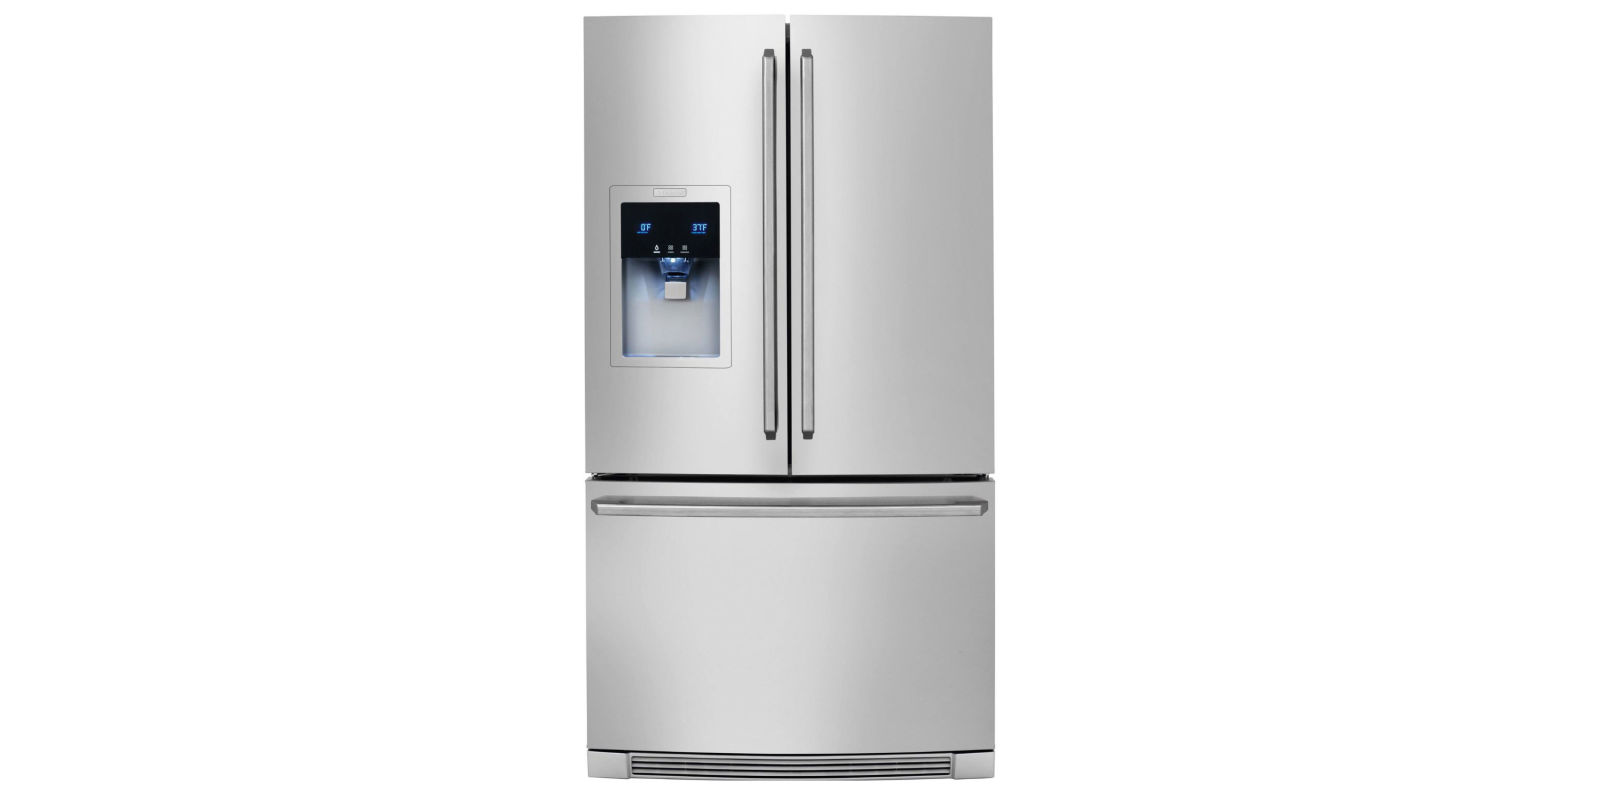 French Door kenmore elite french door refrigerator reviews photos : Electrolux Counter-Depth French Door Refrigerator with Wave-Touch ...